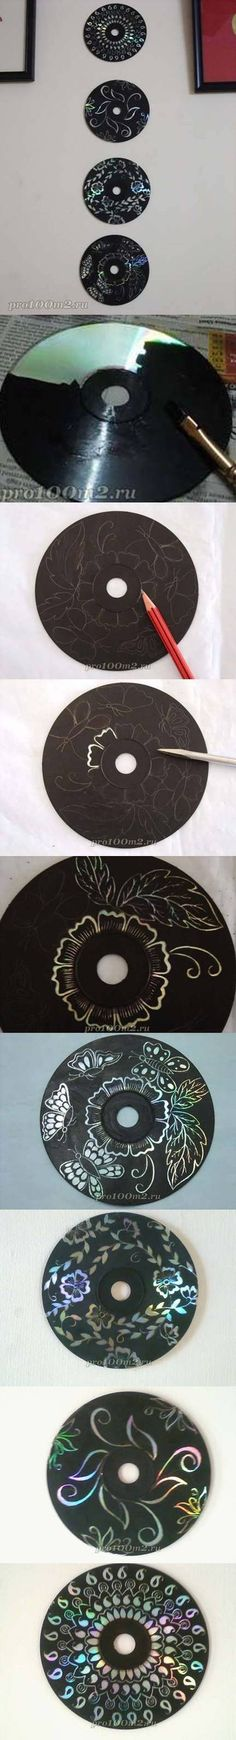 DIY Wall Decoration with CD DIY Wall Decoration with CD.....paint a solid color and then use stencils to make different designs on them